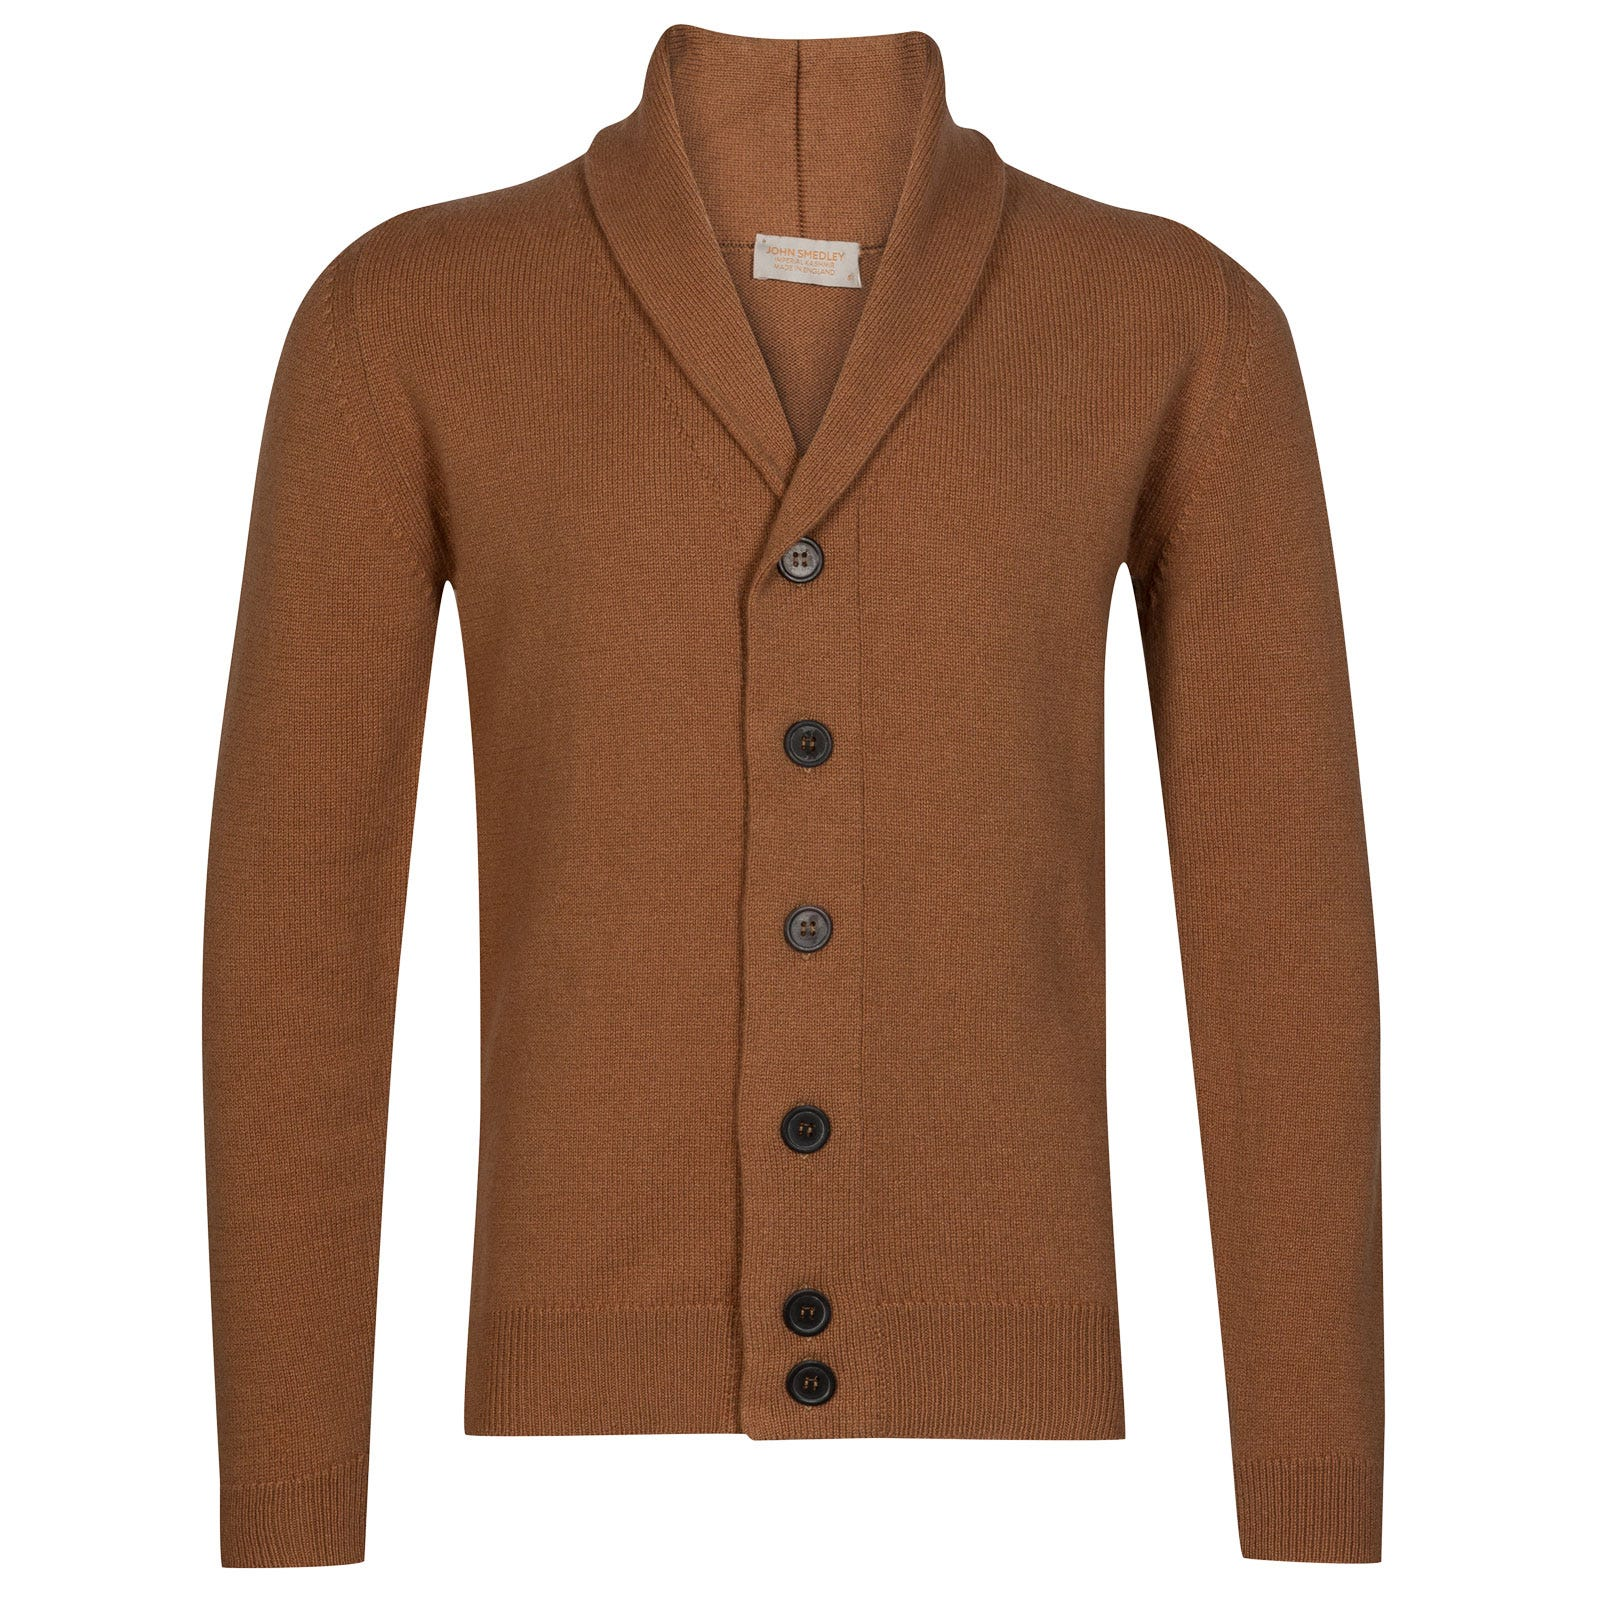 John Smedley patterson Wool and Cashmere Jacket in Camel-L